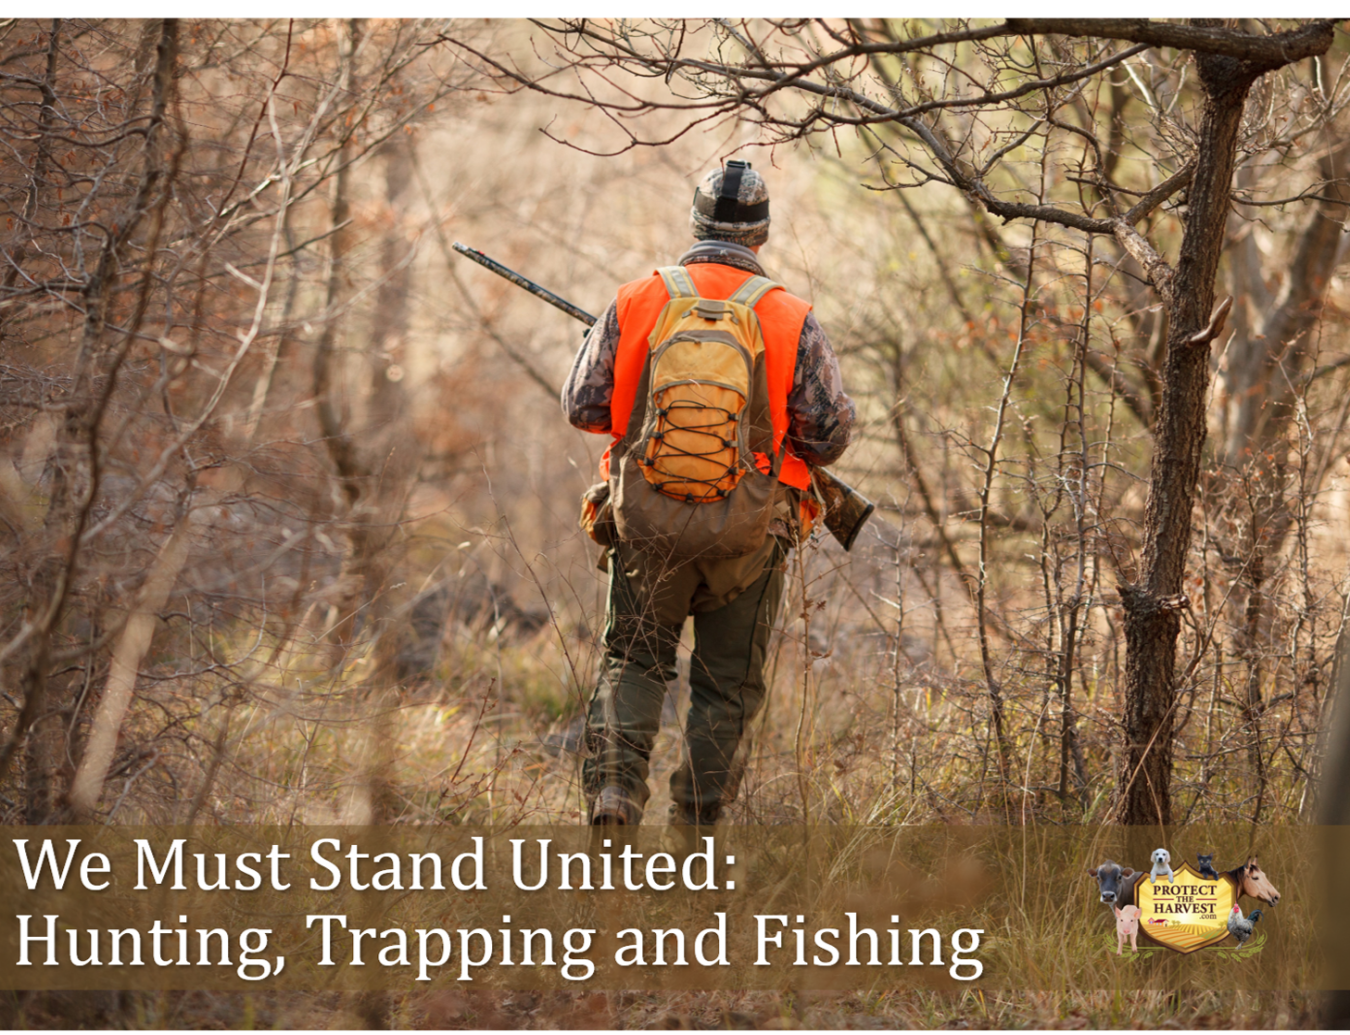 We Must Stand United - Hunting, Trapping and Fishing